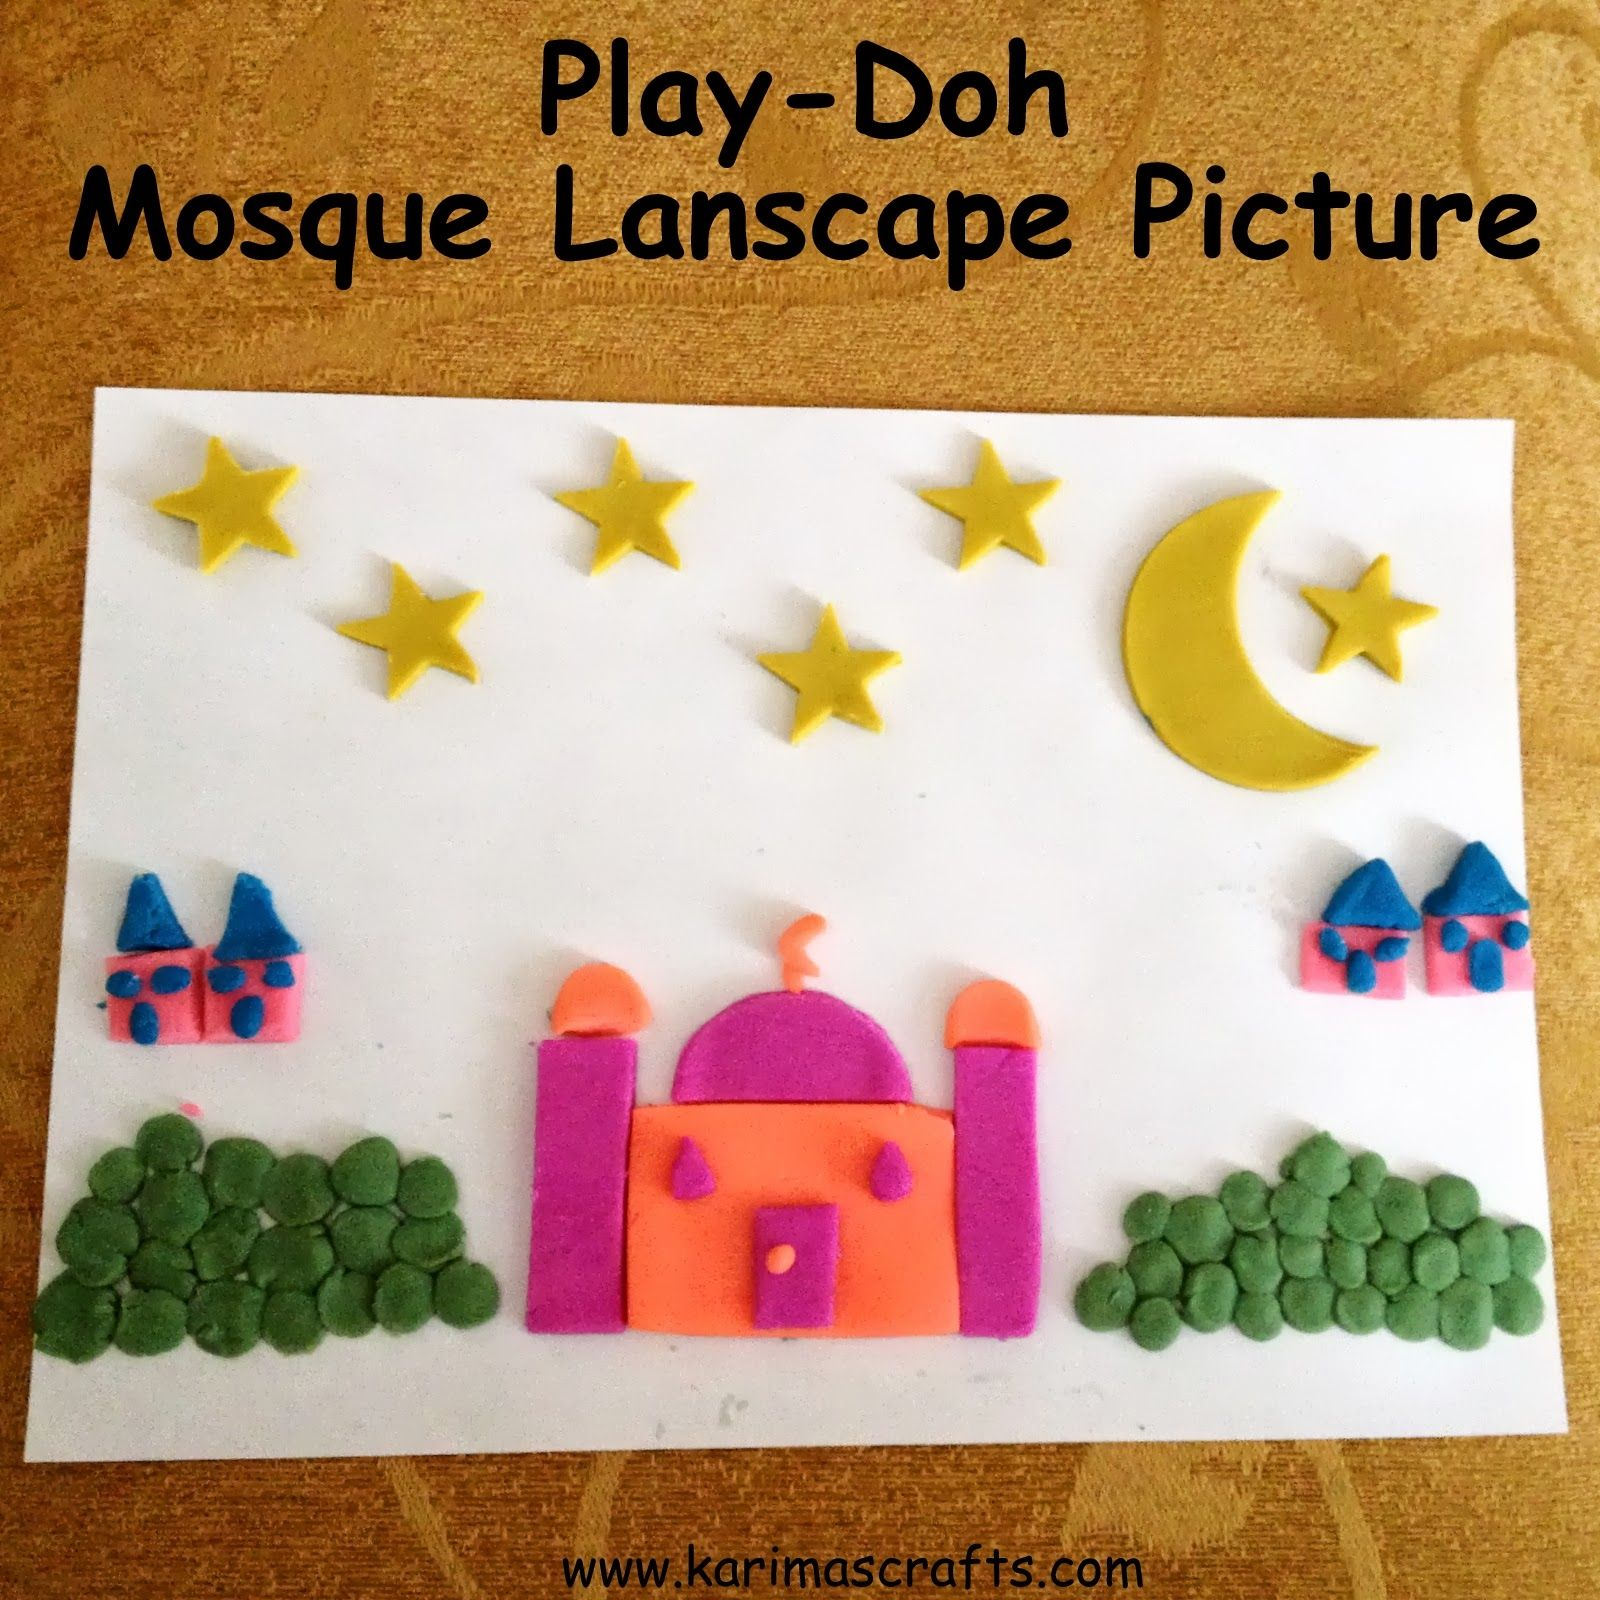 Games crafts lego jenga play doh minecraft ramadan islam muslim karima   eid also best ideas for kids images rh pinterest